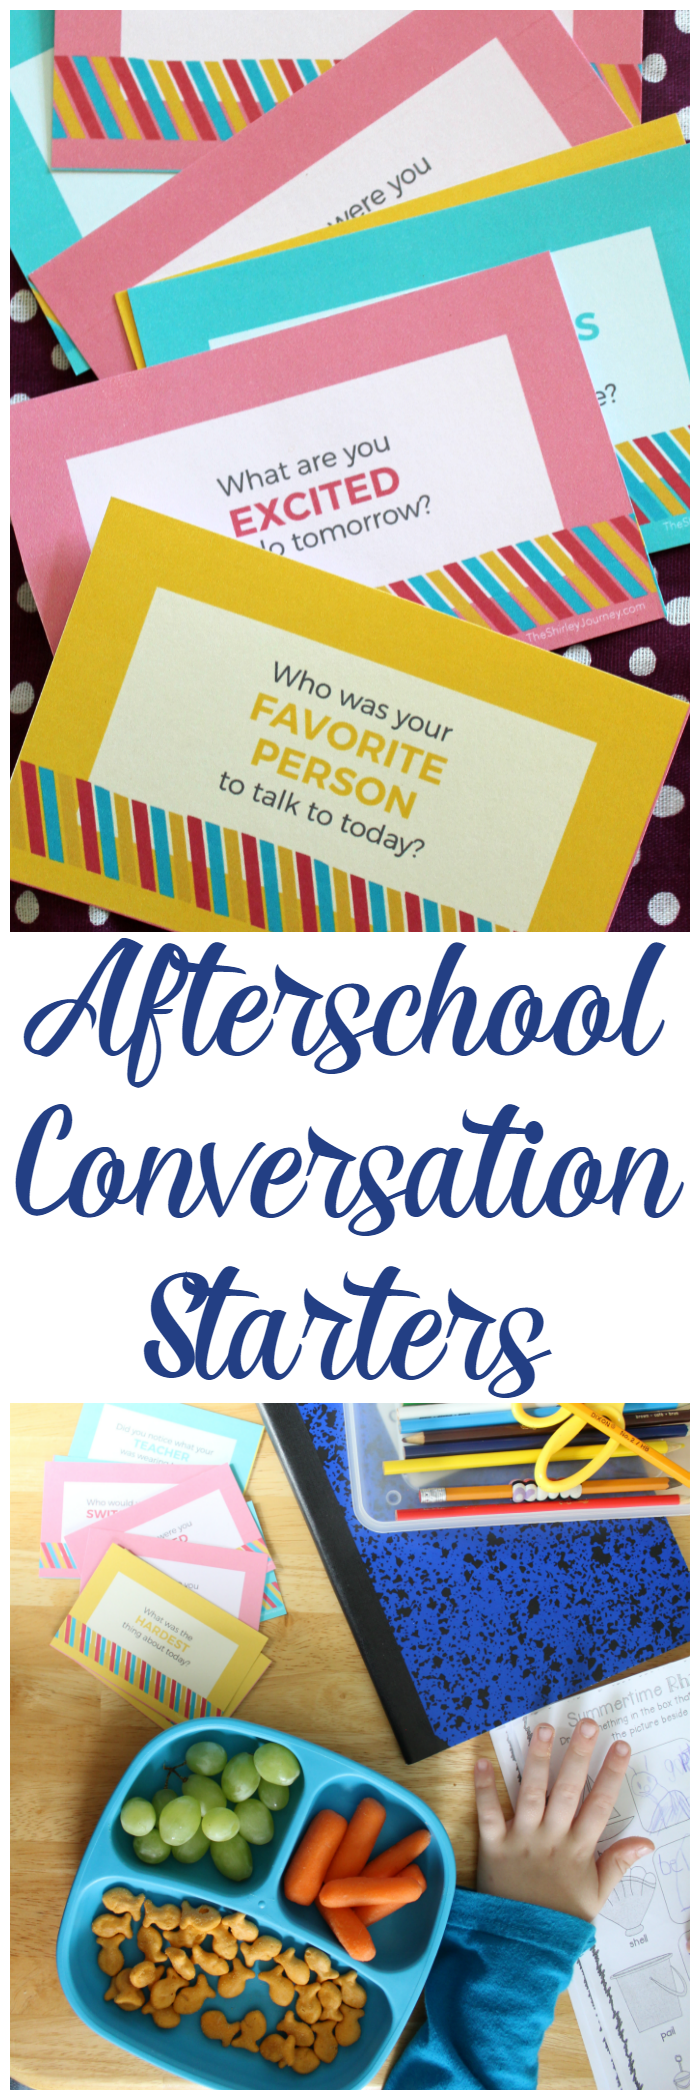 """These printable conversation starters are just what you need to connect with your kid after school! No more """"how was your day"""" questions!"""